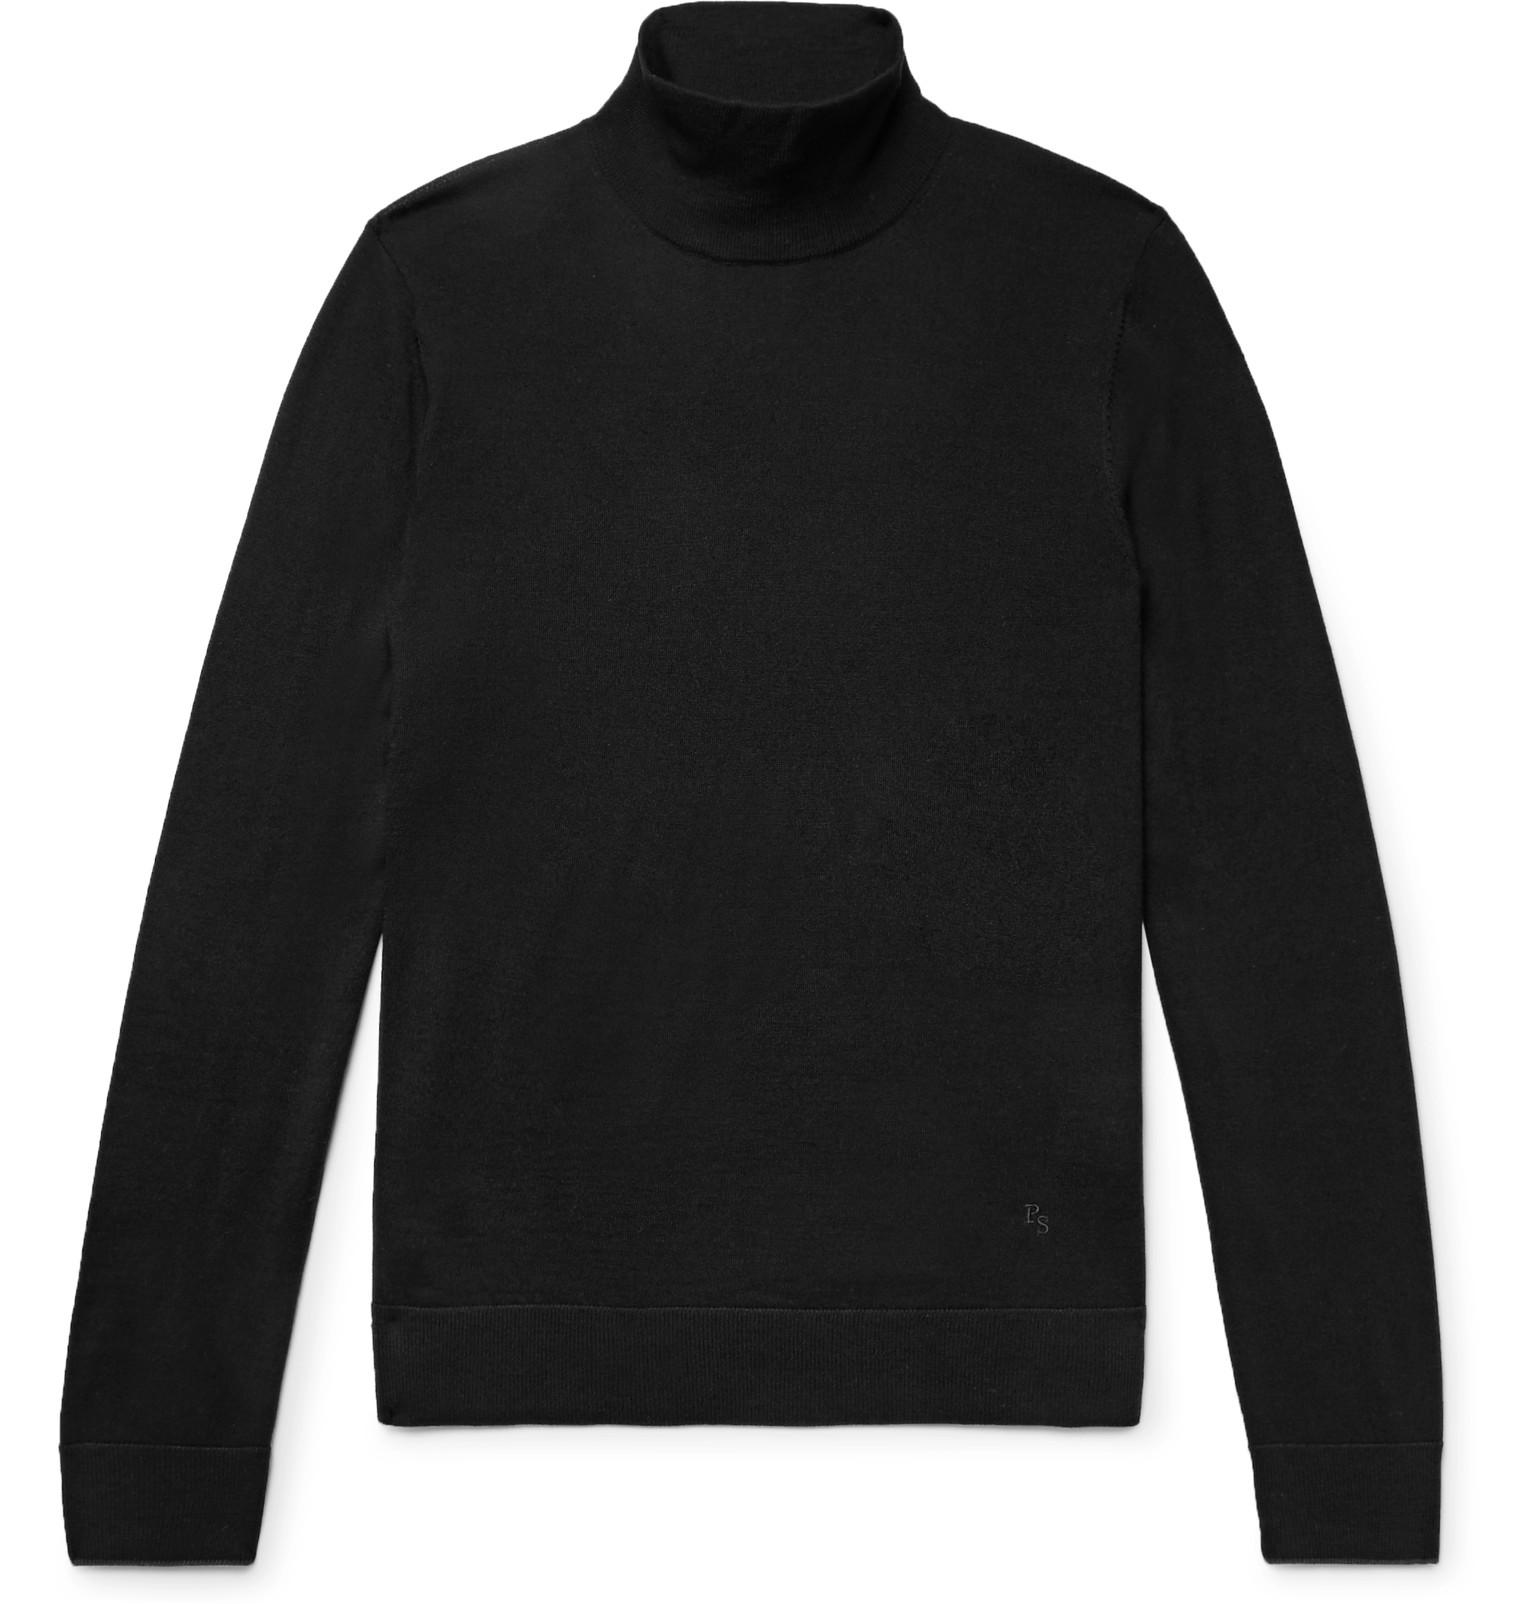 Smith Sweater Black Rollneck Wool Merino Men's Ps By Paul qxwFFg